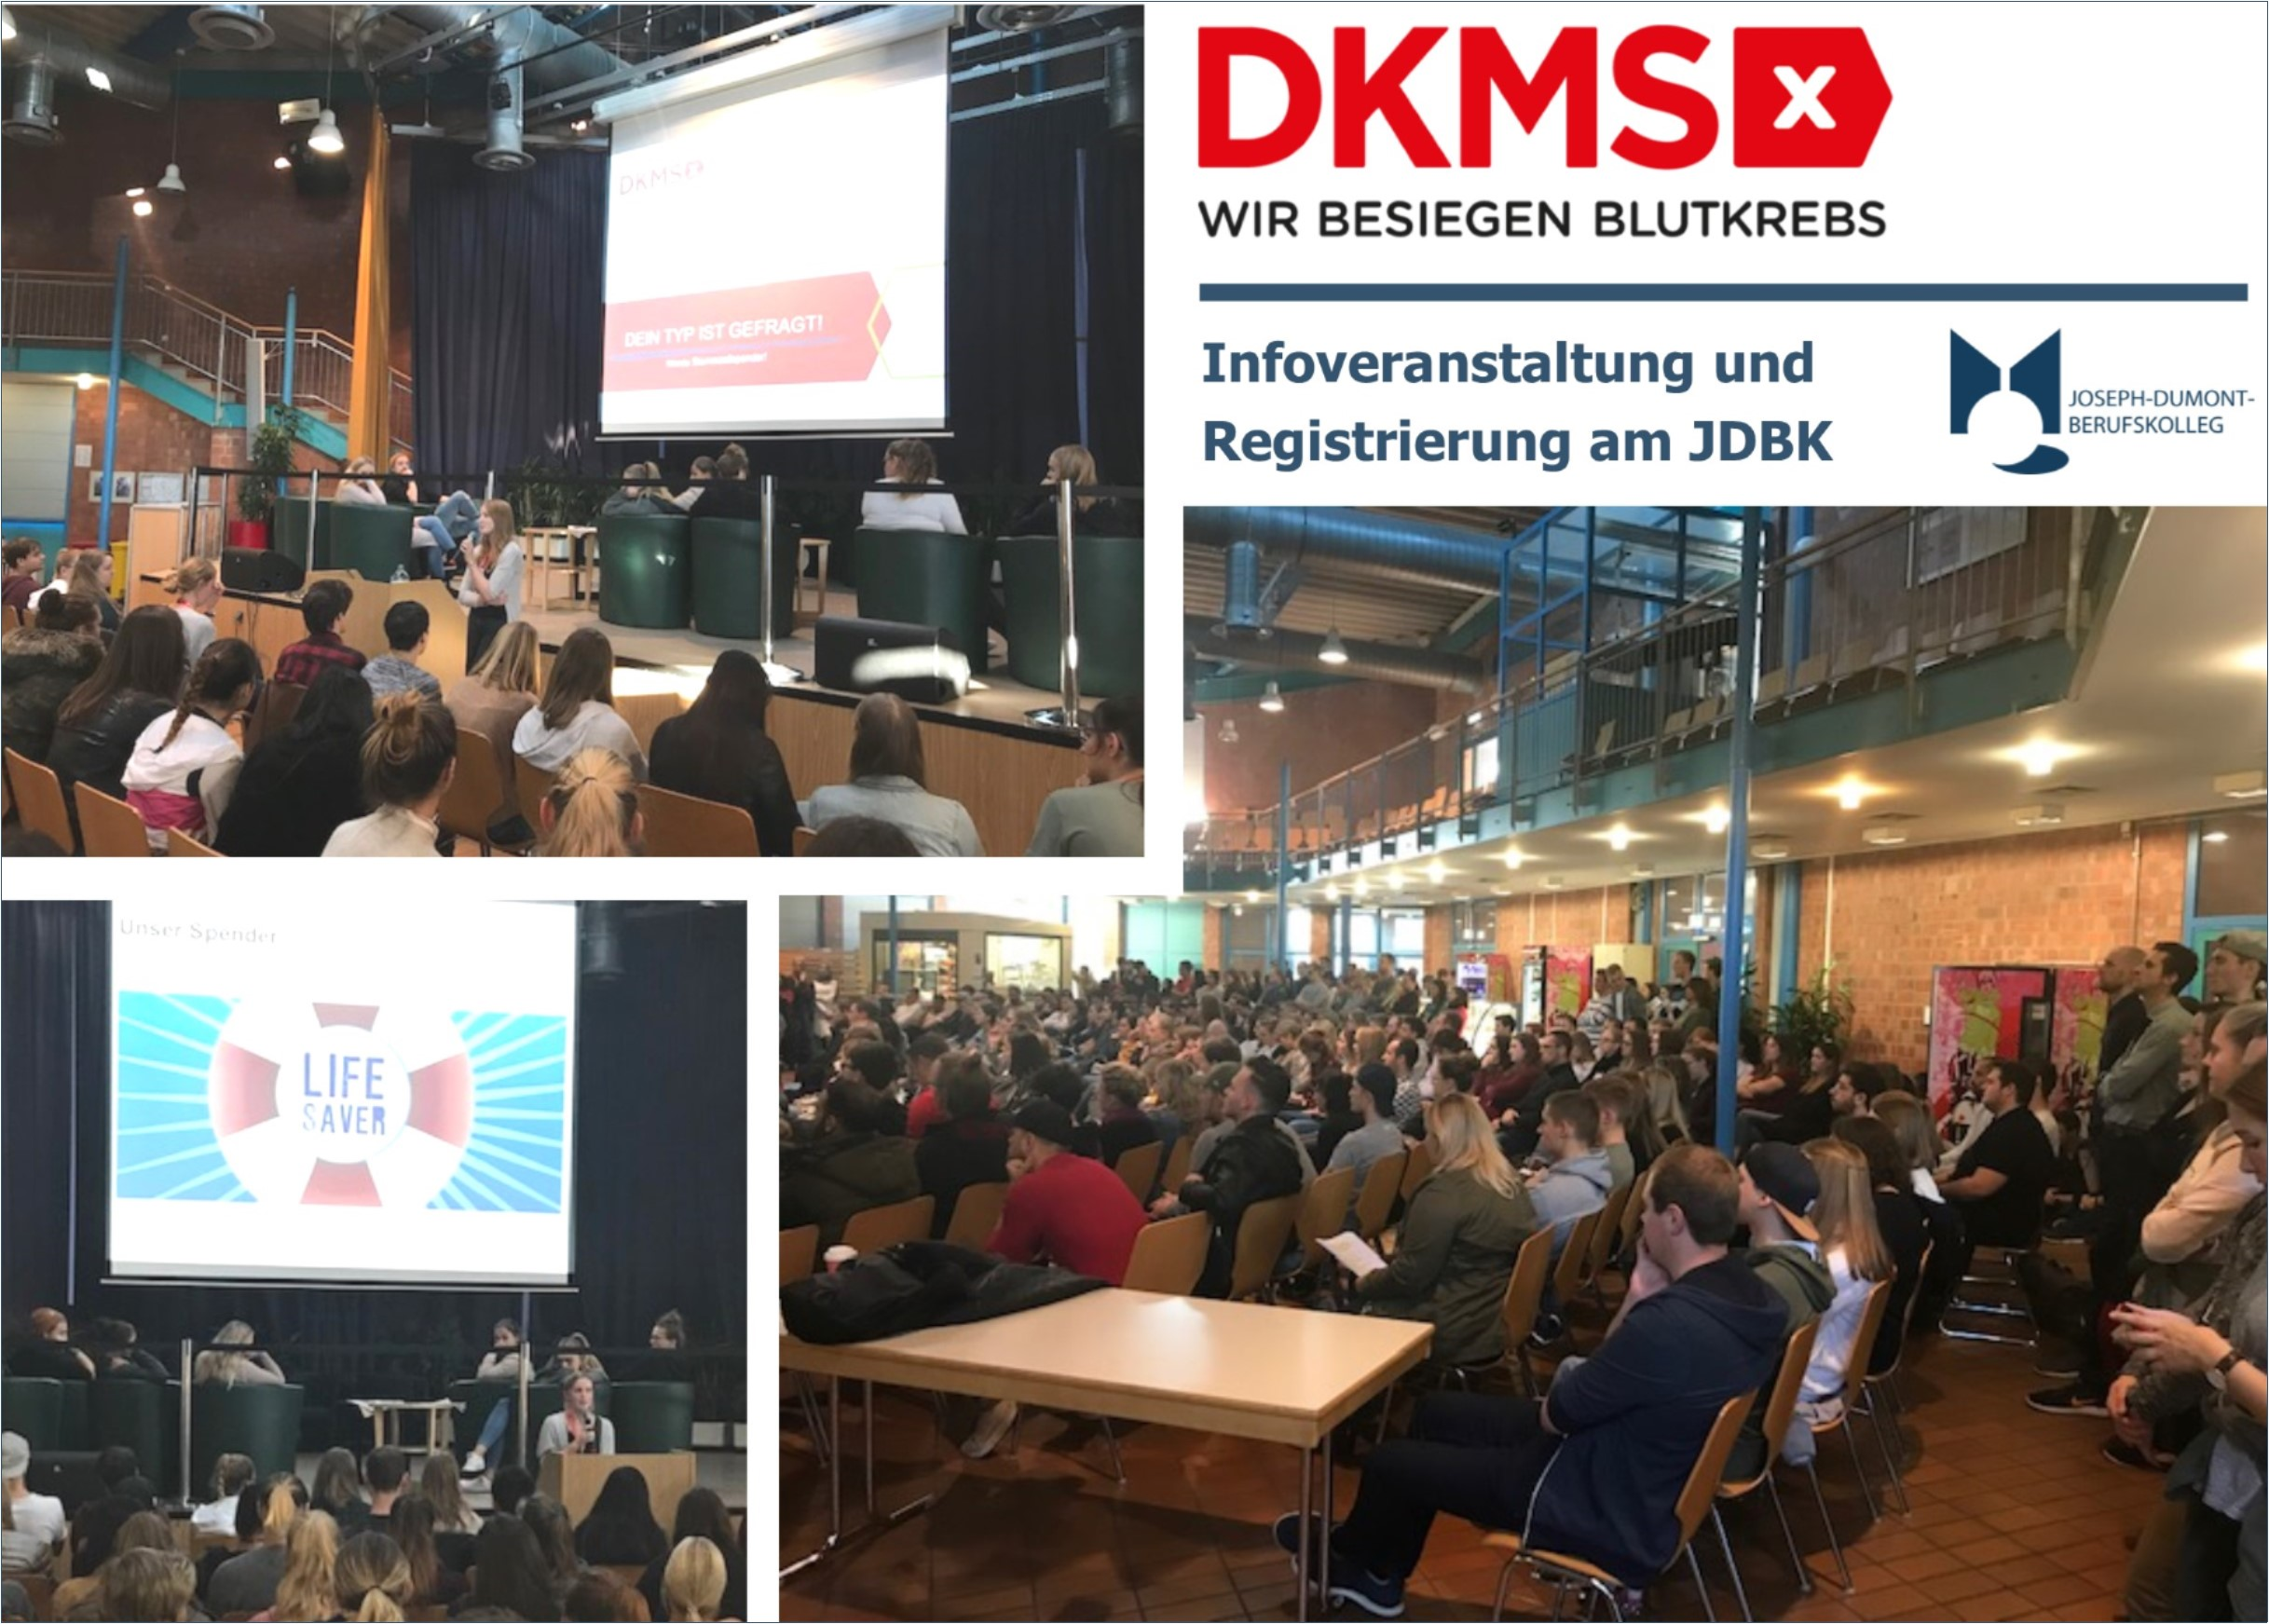 DKMS18